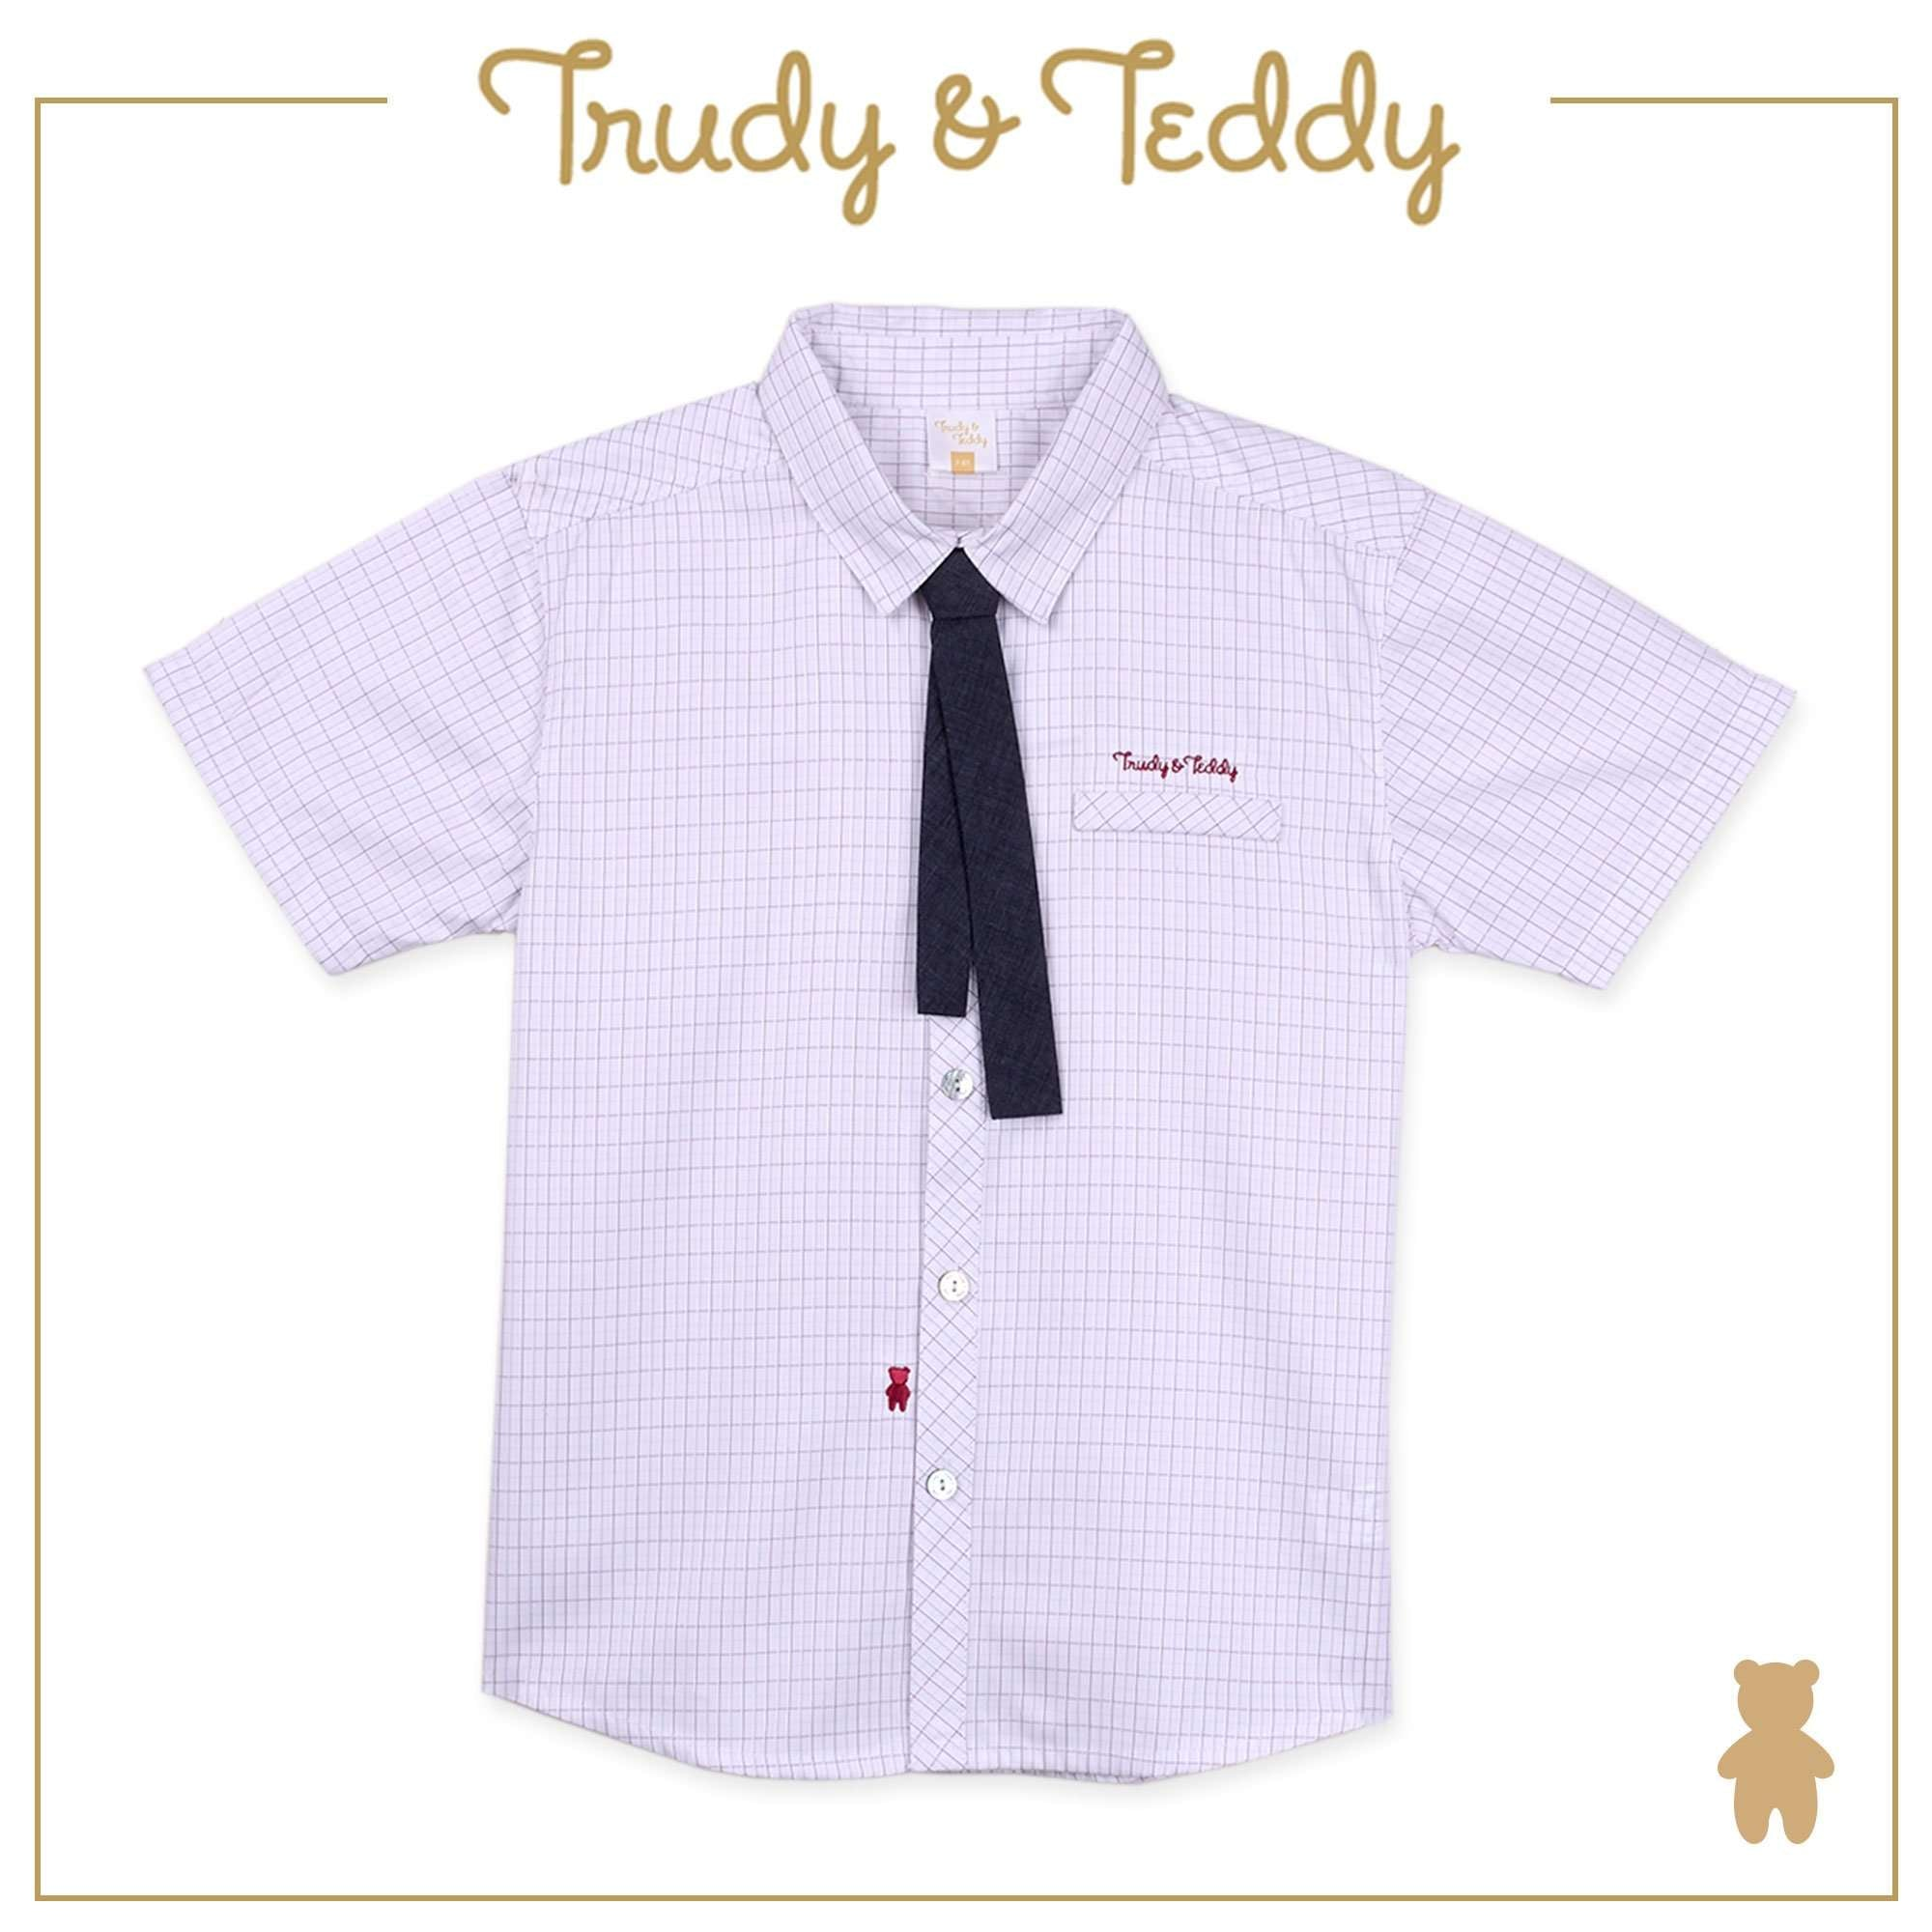 Trudy & Teddy Toddler to Kid Boy Short Sleeve Shirt - Red T922002-1453-R1 : Buy Trudy & Teddy online at CMG.MY